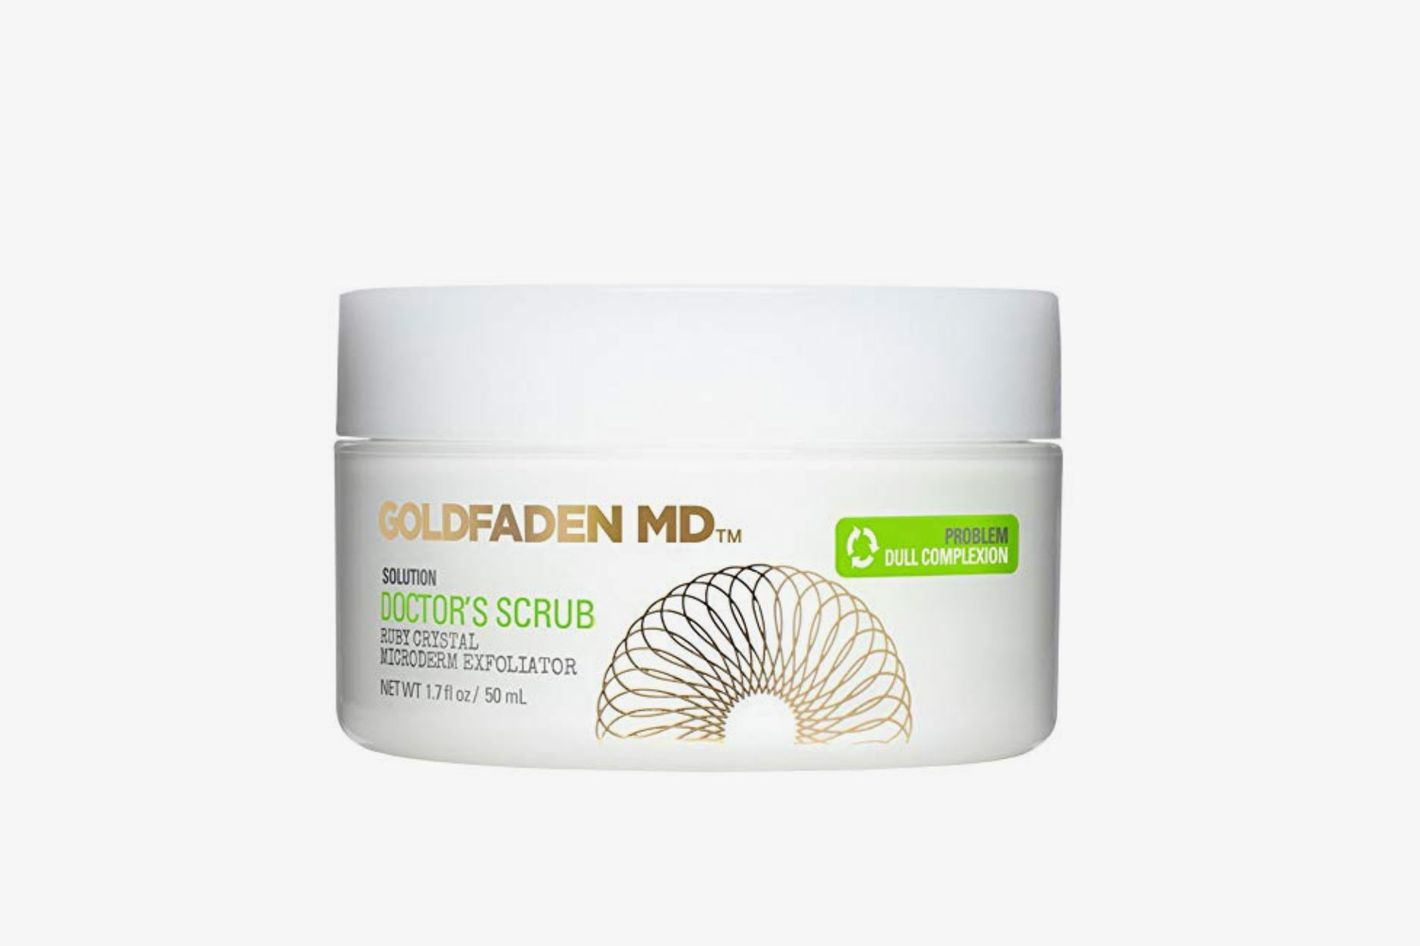 Goldfaden MD Microderm Daily Facial Exfoliator Doctor's Scrub for Face